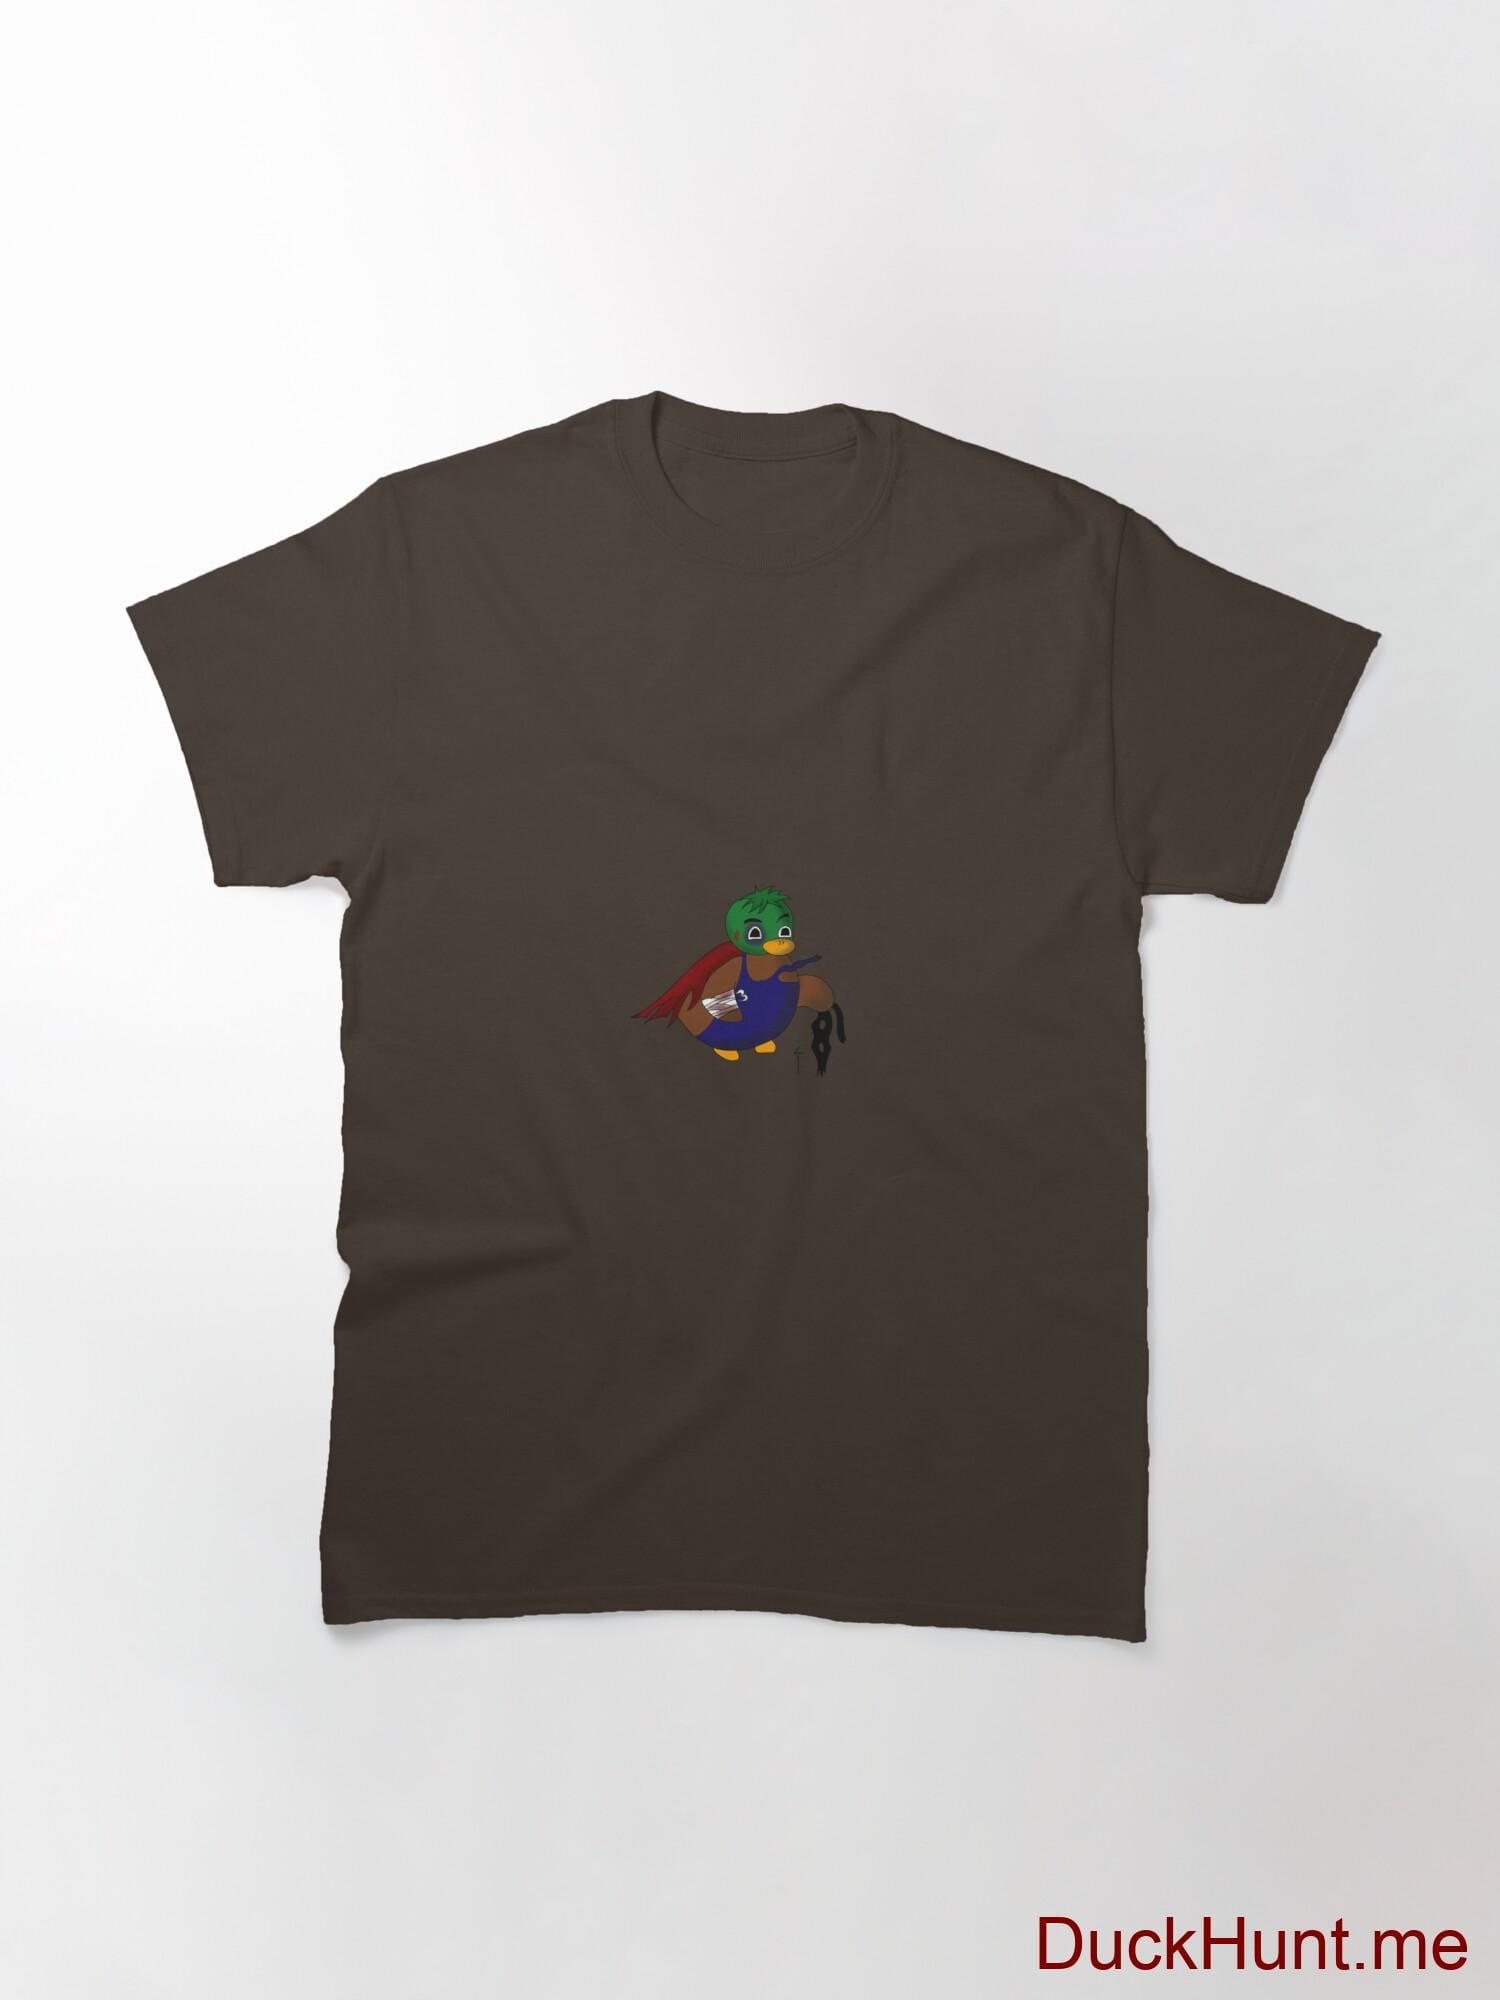 Dead DuckHunt Boss (smokeless) Brown Classic T-Shirt (Front printed) alternative image 2